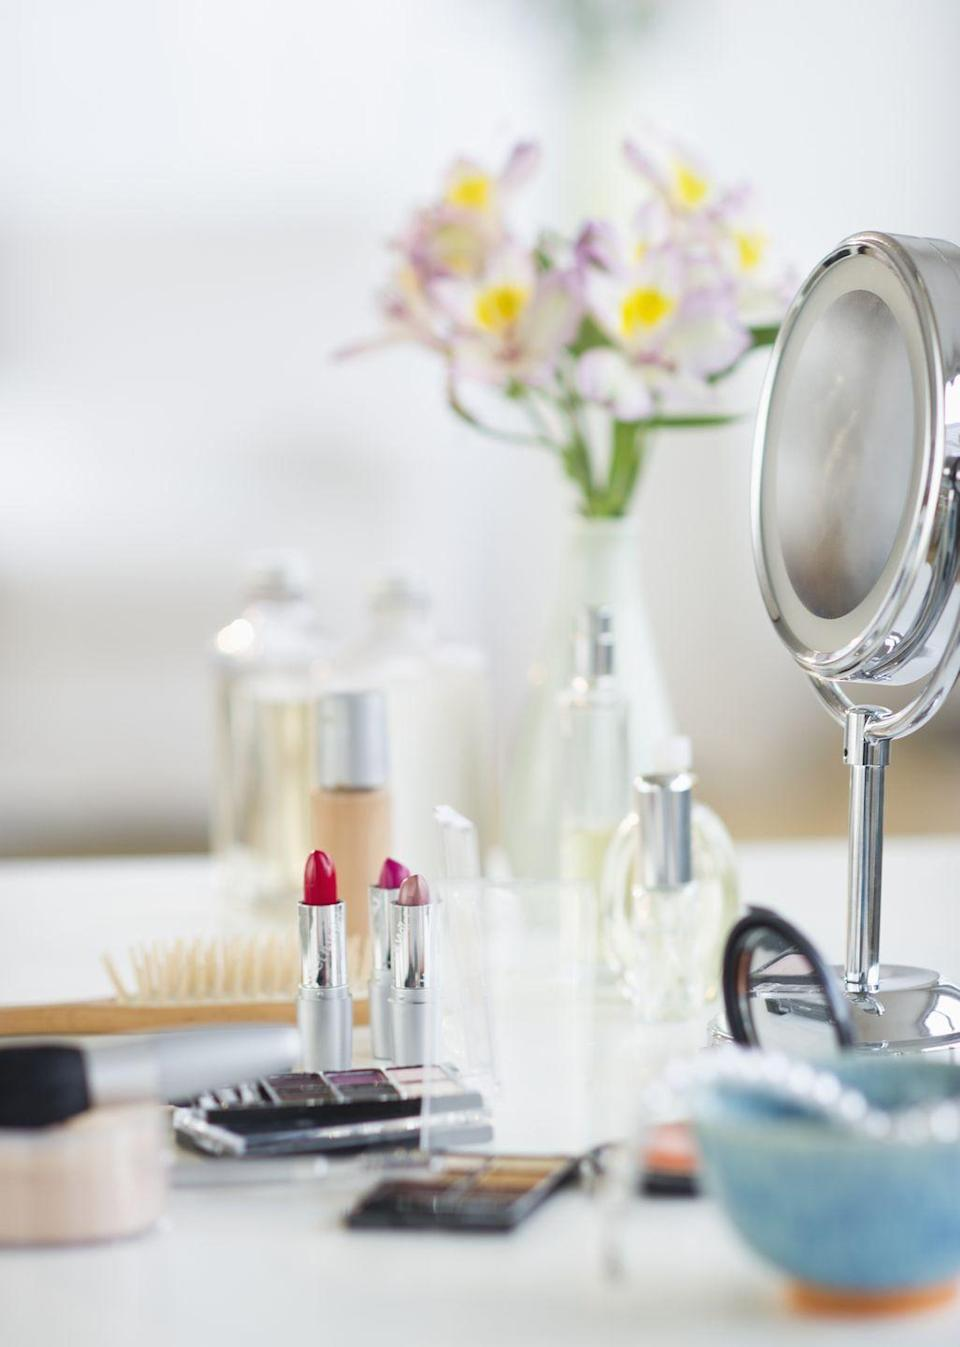 """<p>Again, you might hang on to that ancient mascara because it was expensive, but using old eye makeup can lead to a nasty infection. That's why experts recommend tossing it <a href=""""https://www.goodhousekeeping.com/health/a26167/habits-hurting-eyes/ """" rel=""""nofollow noopener"""" target=""""_blank"""" data-ylk=""""slk:after three months"""" class=""""link rapid-noclick-resp"""">after three months</a>.</p>"""